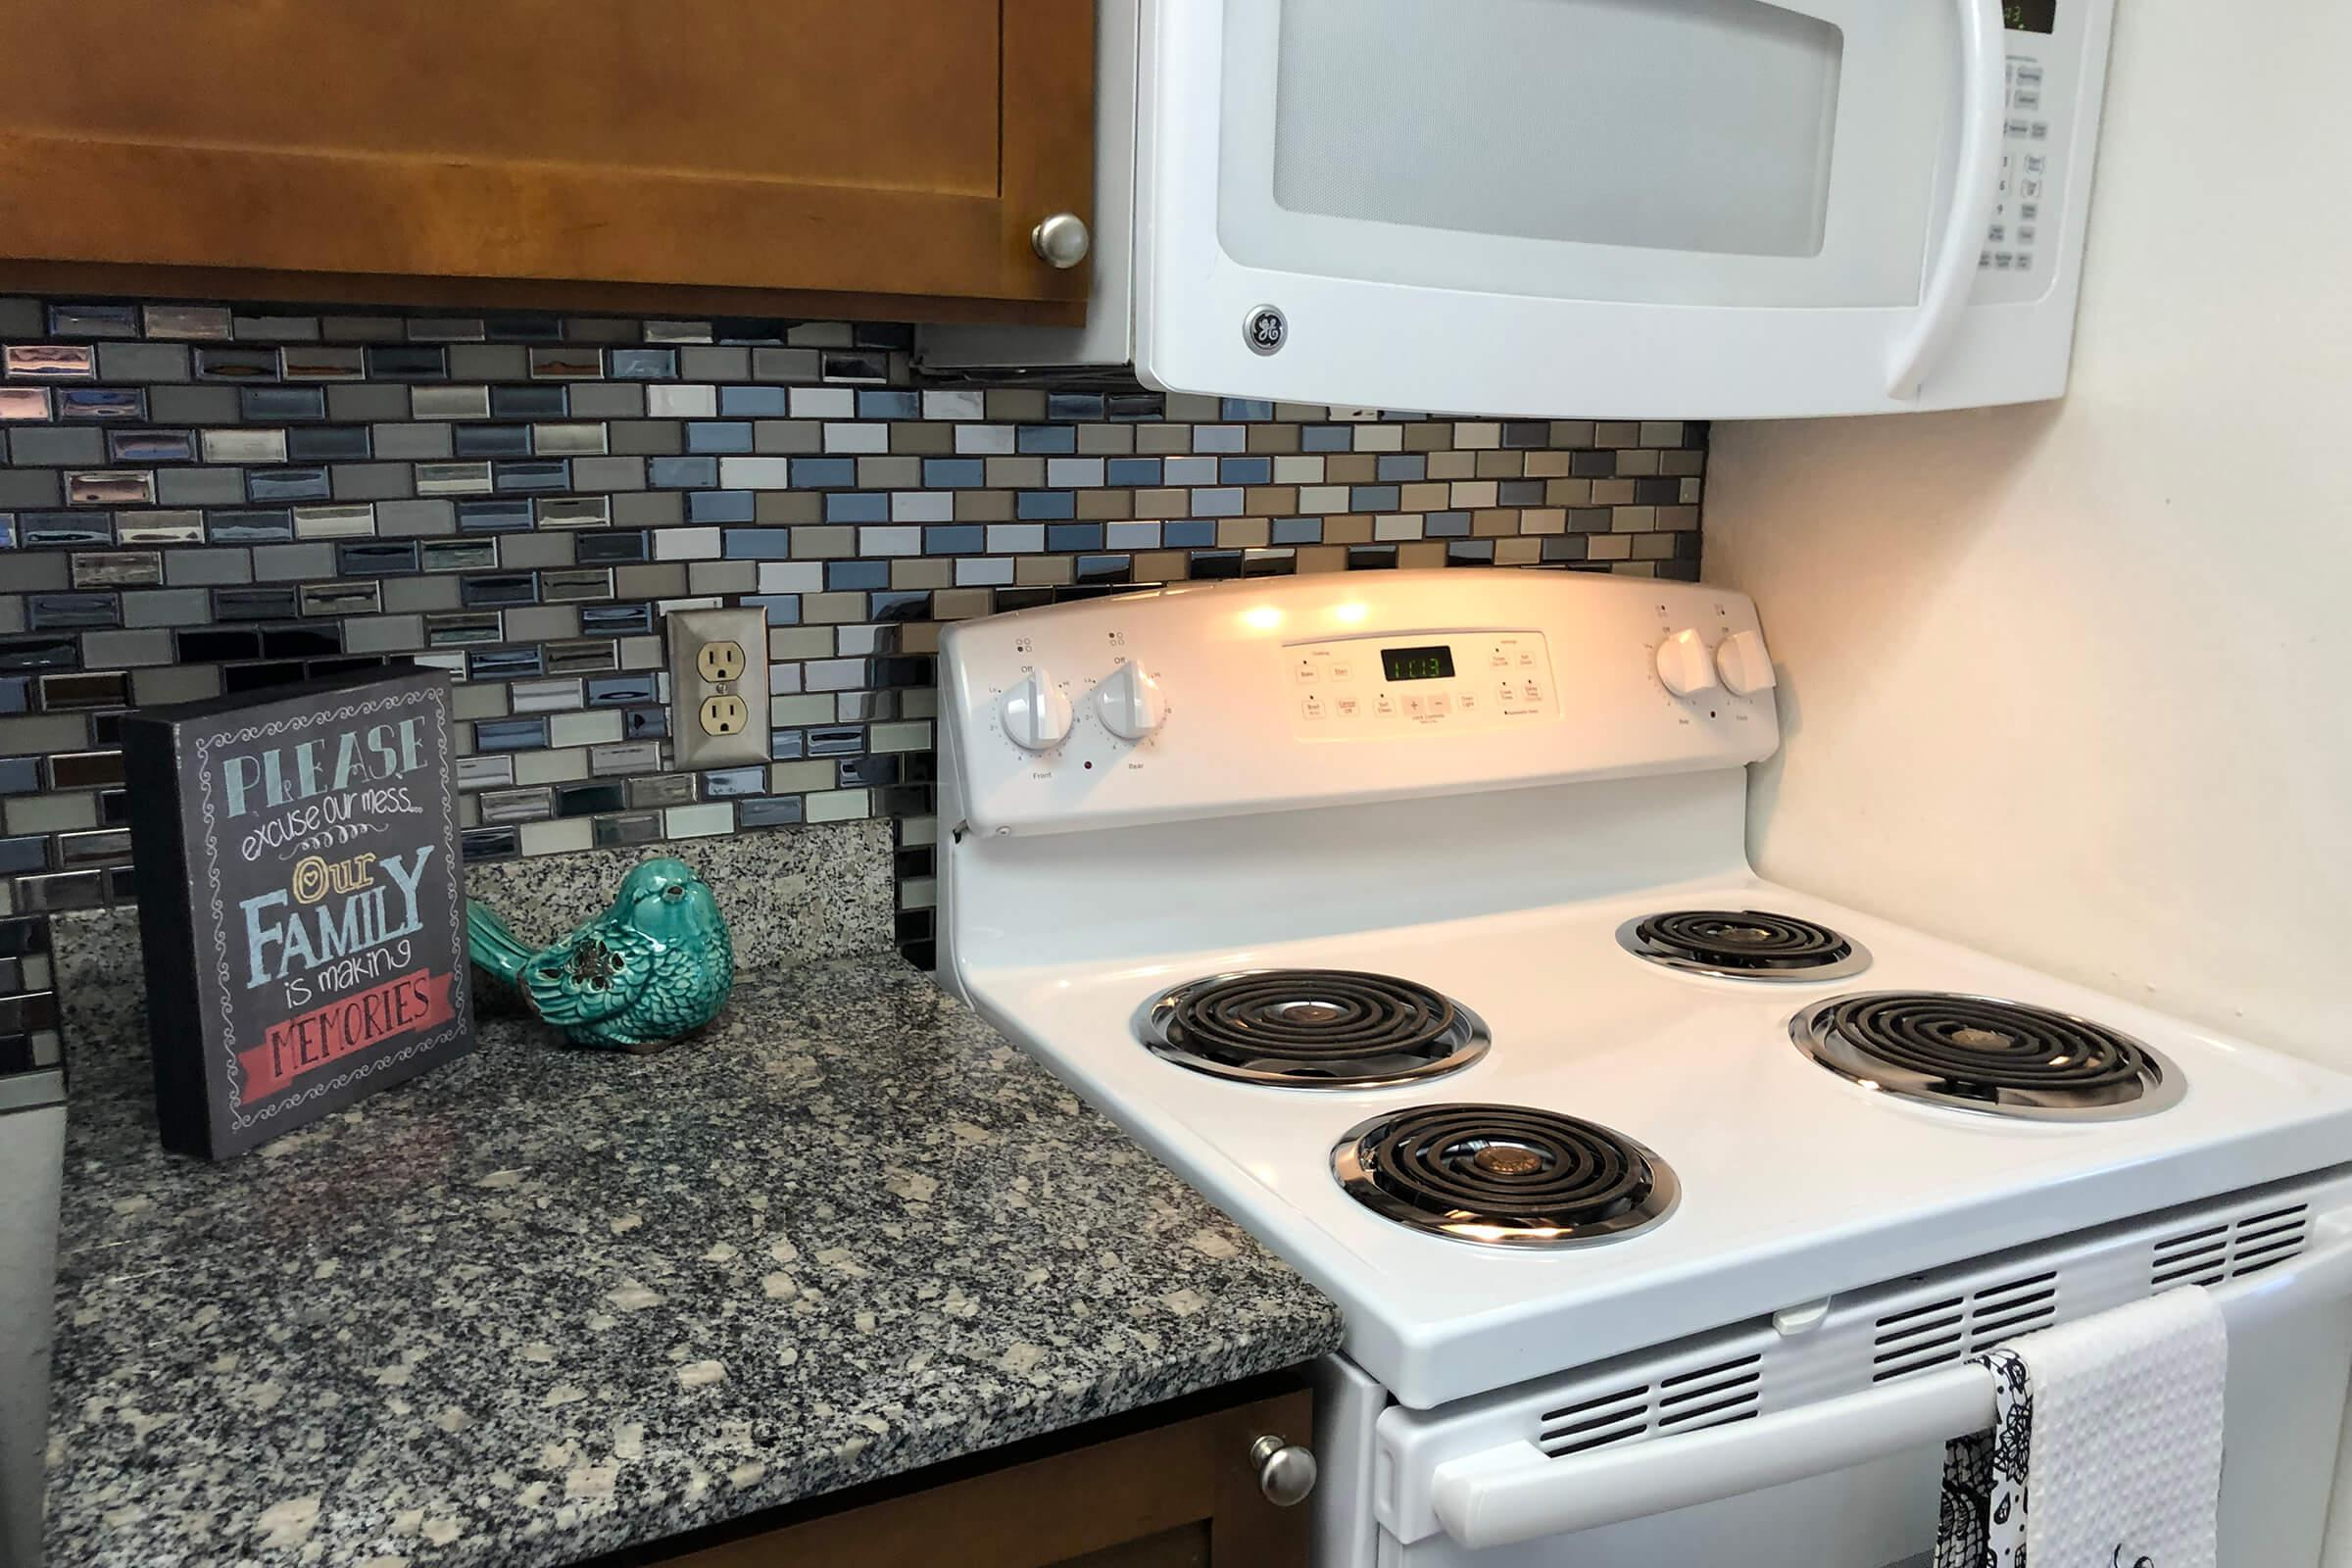 a stove top oven sitting inside of a kitchen